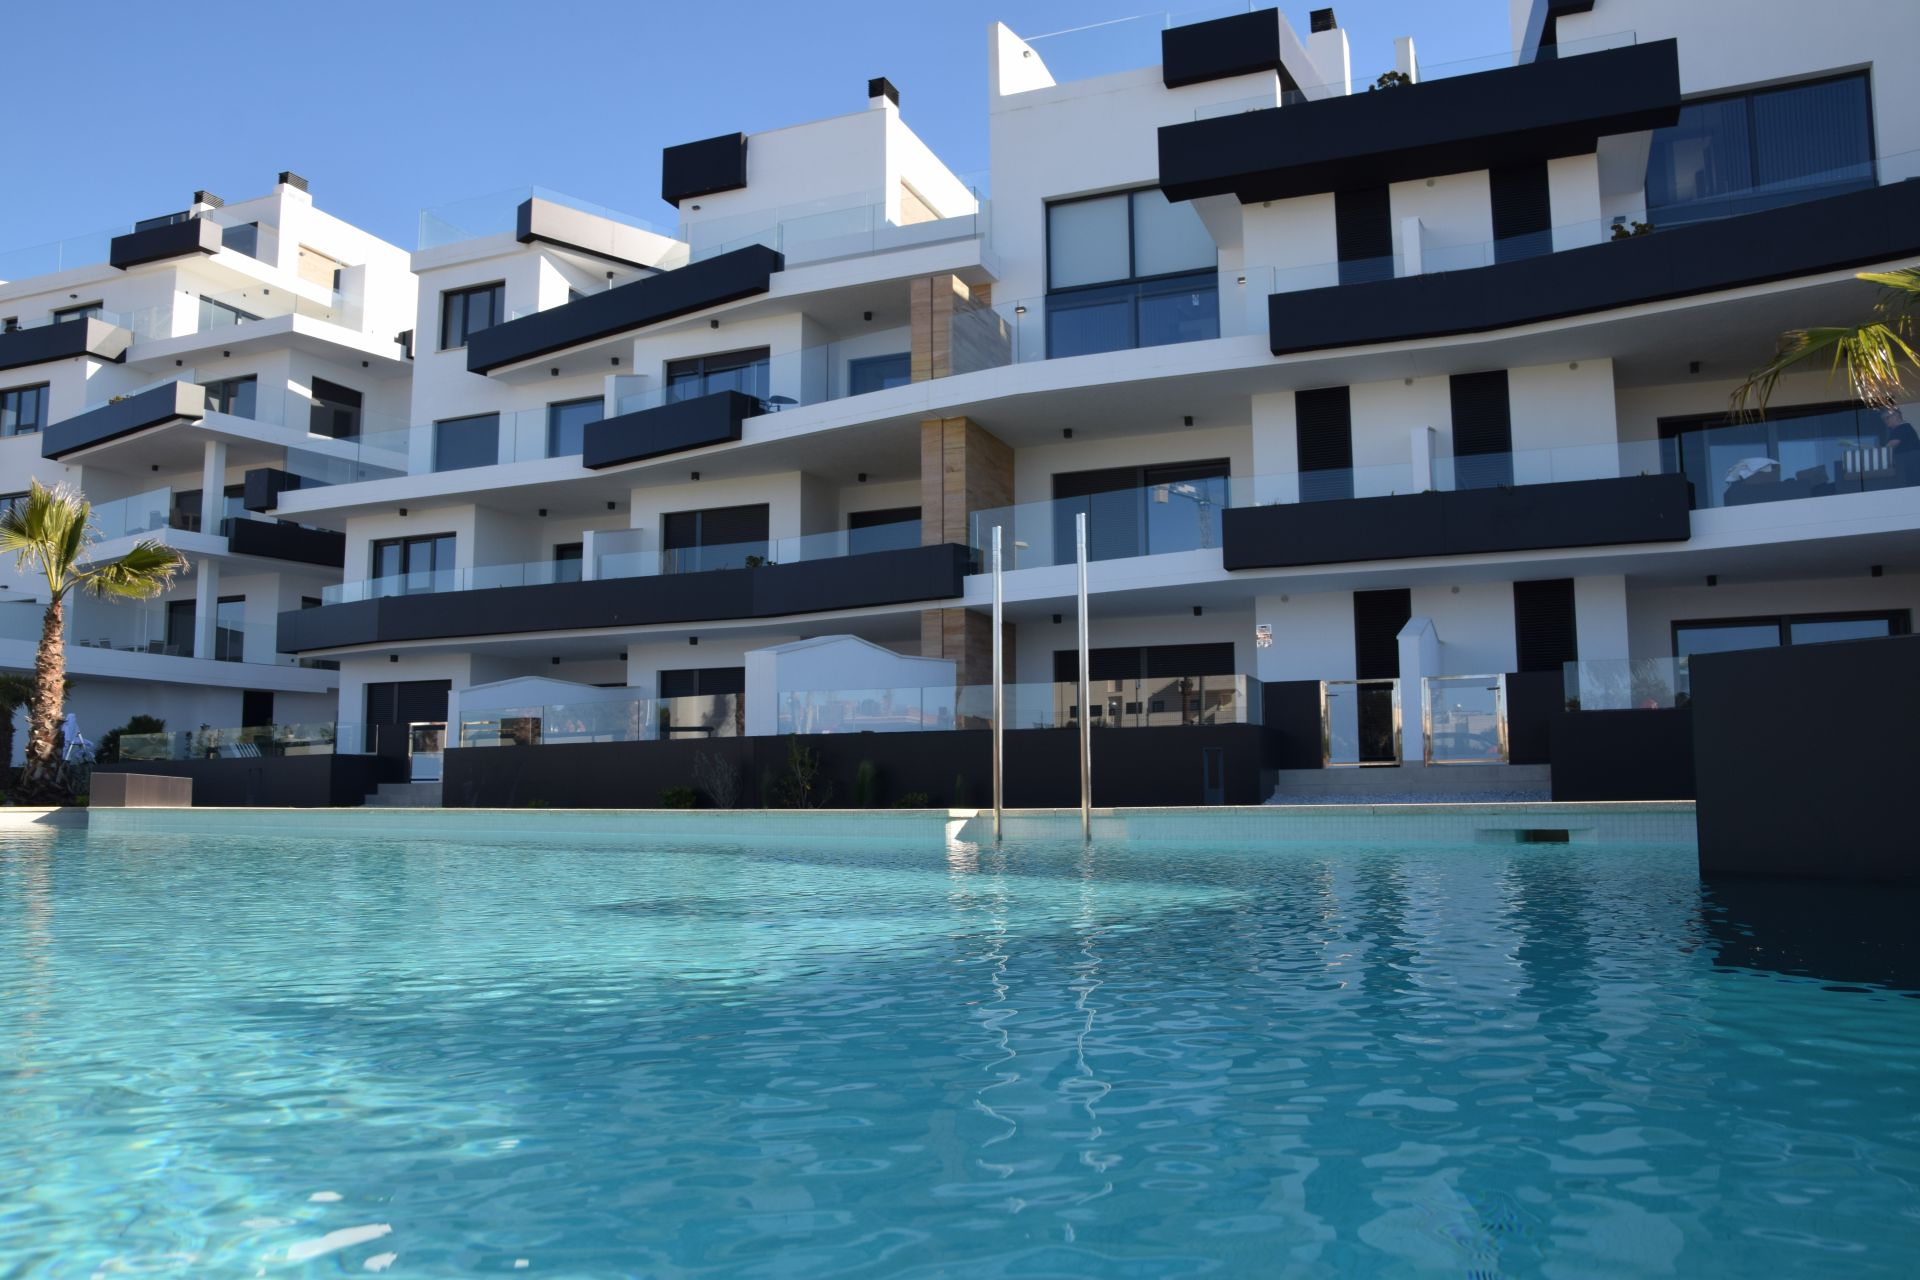 Key-ready apartments in Orihuela Costa 2